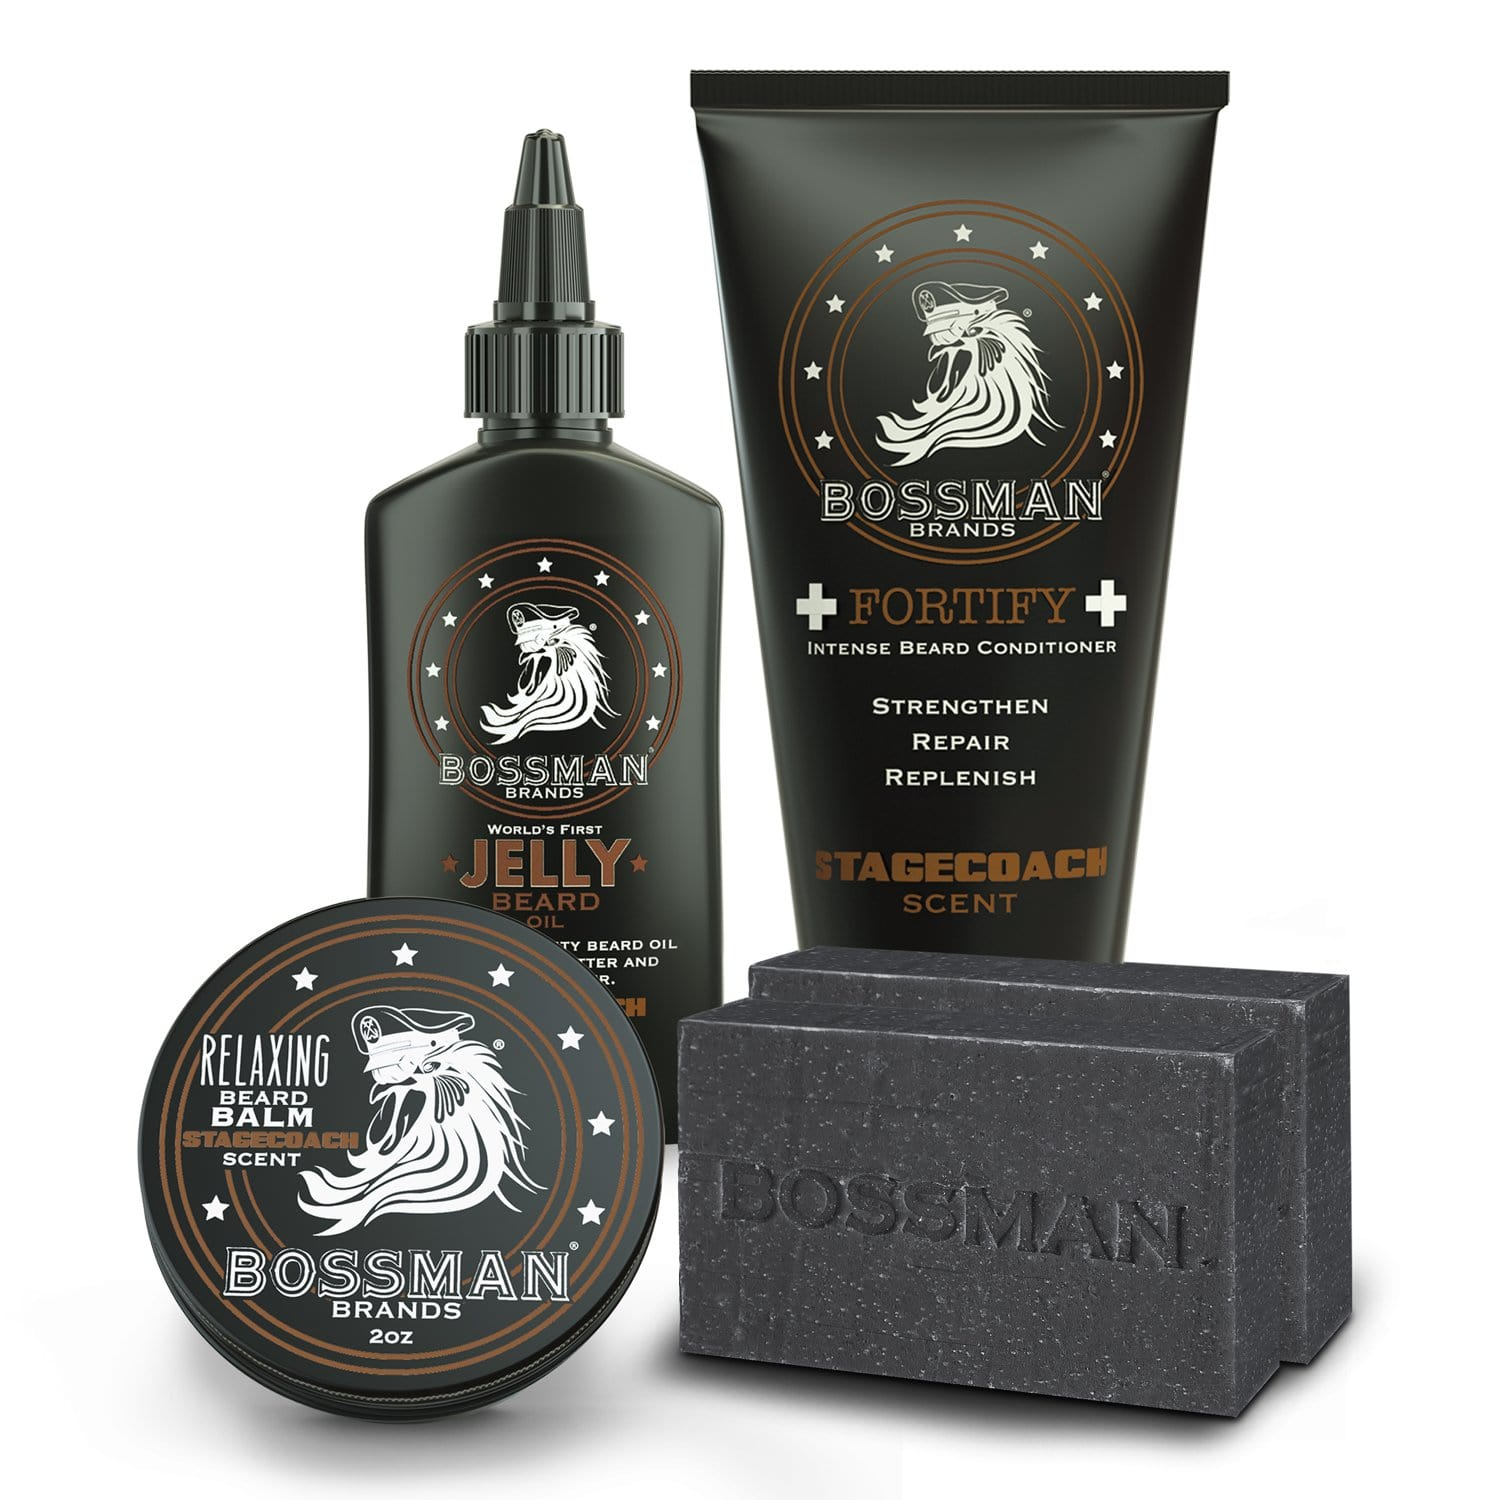 Bossman Reload Beard Care Kit - Stagecoach Scent